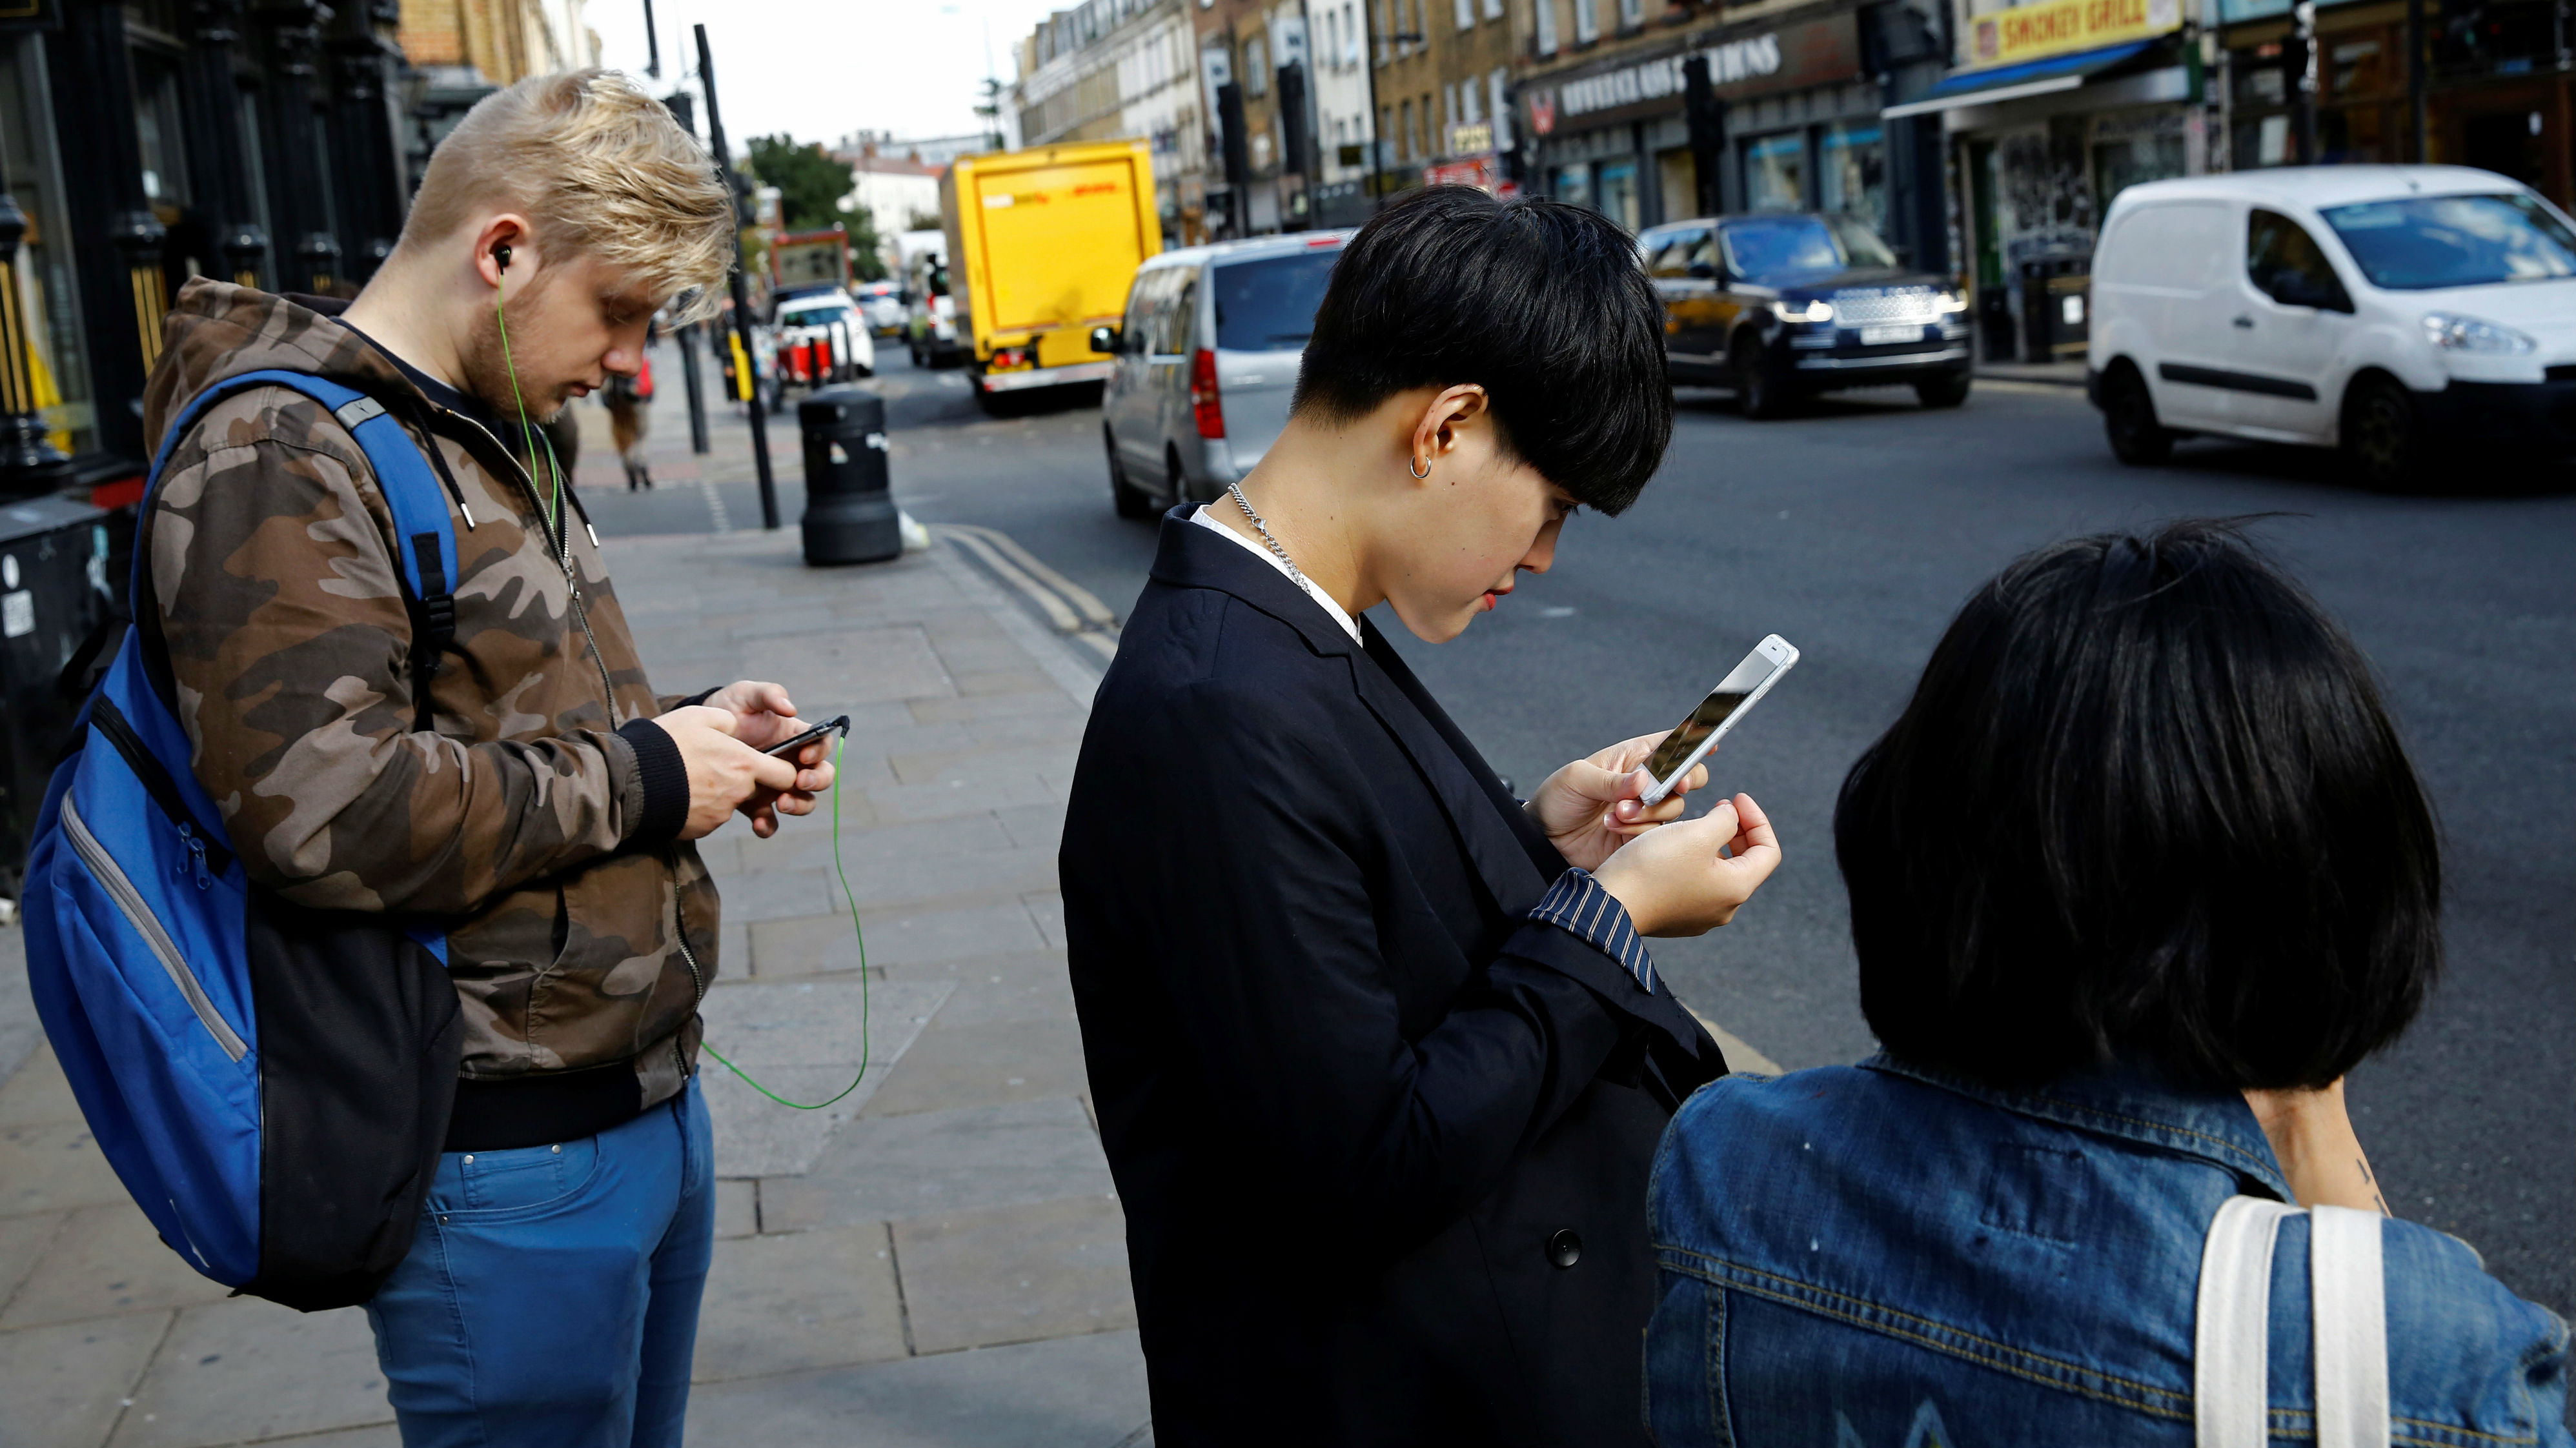 Three people looking at their phones on a street.